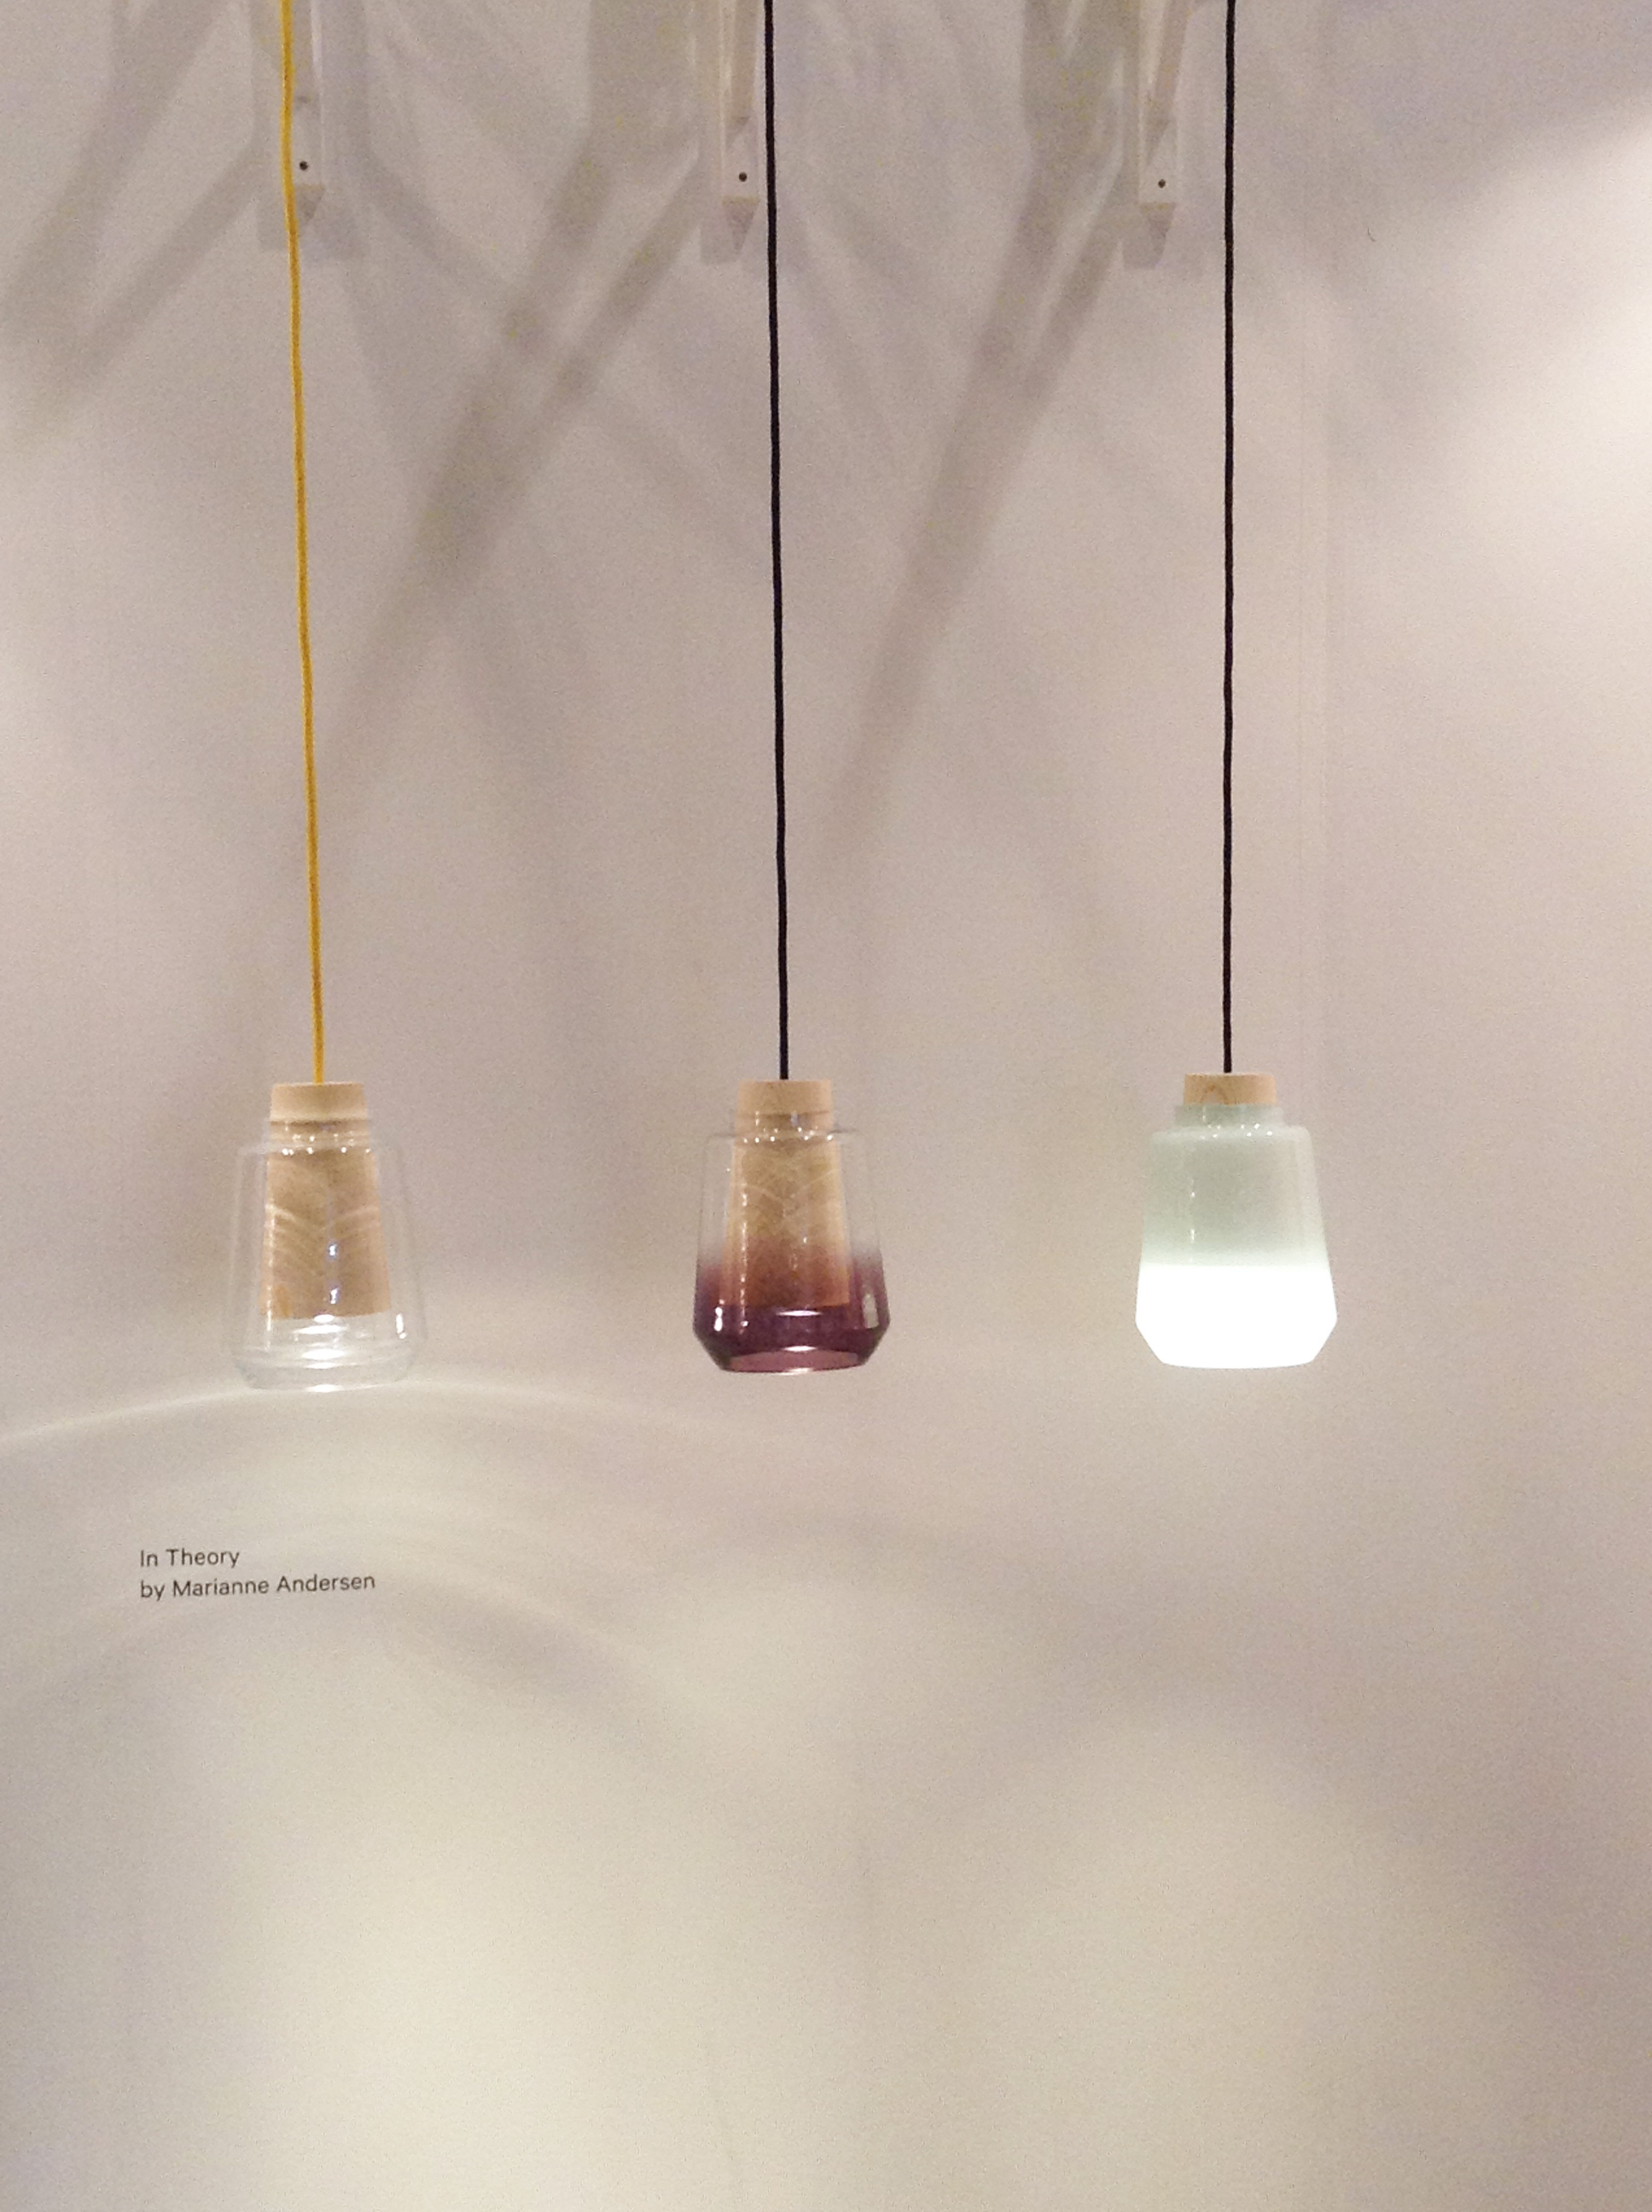 Stockholm Furniture Fair-Light